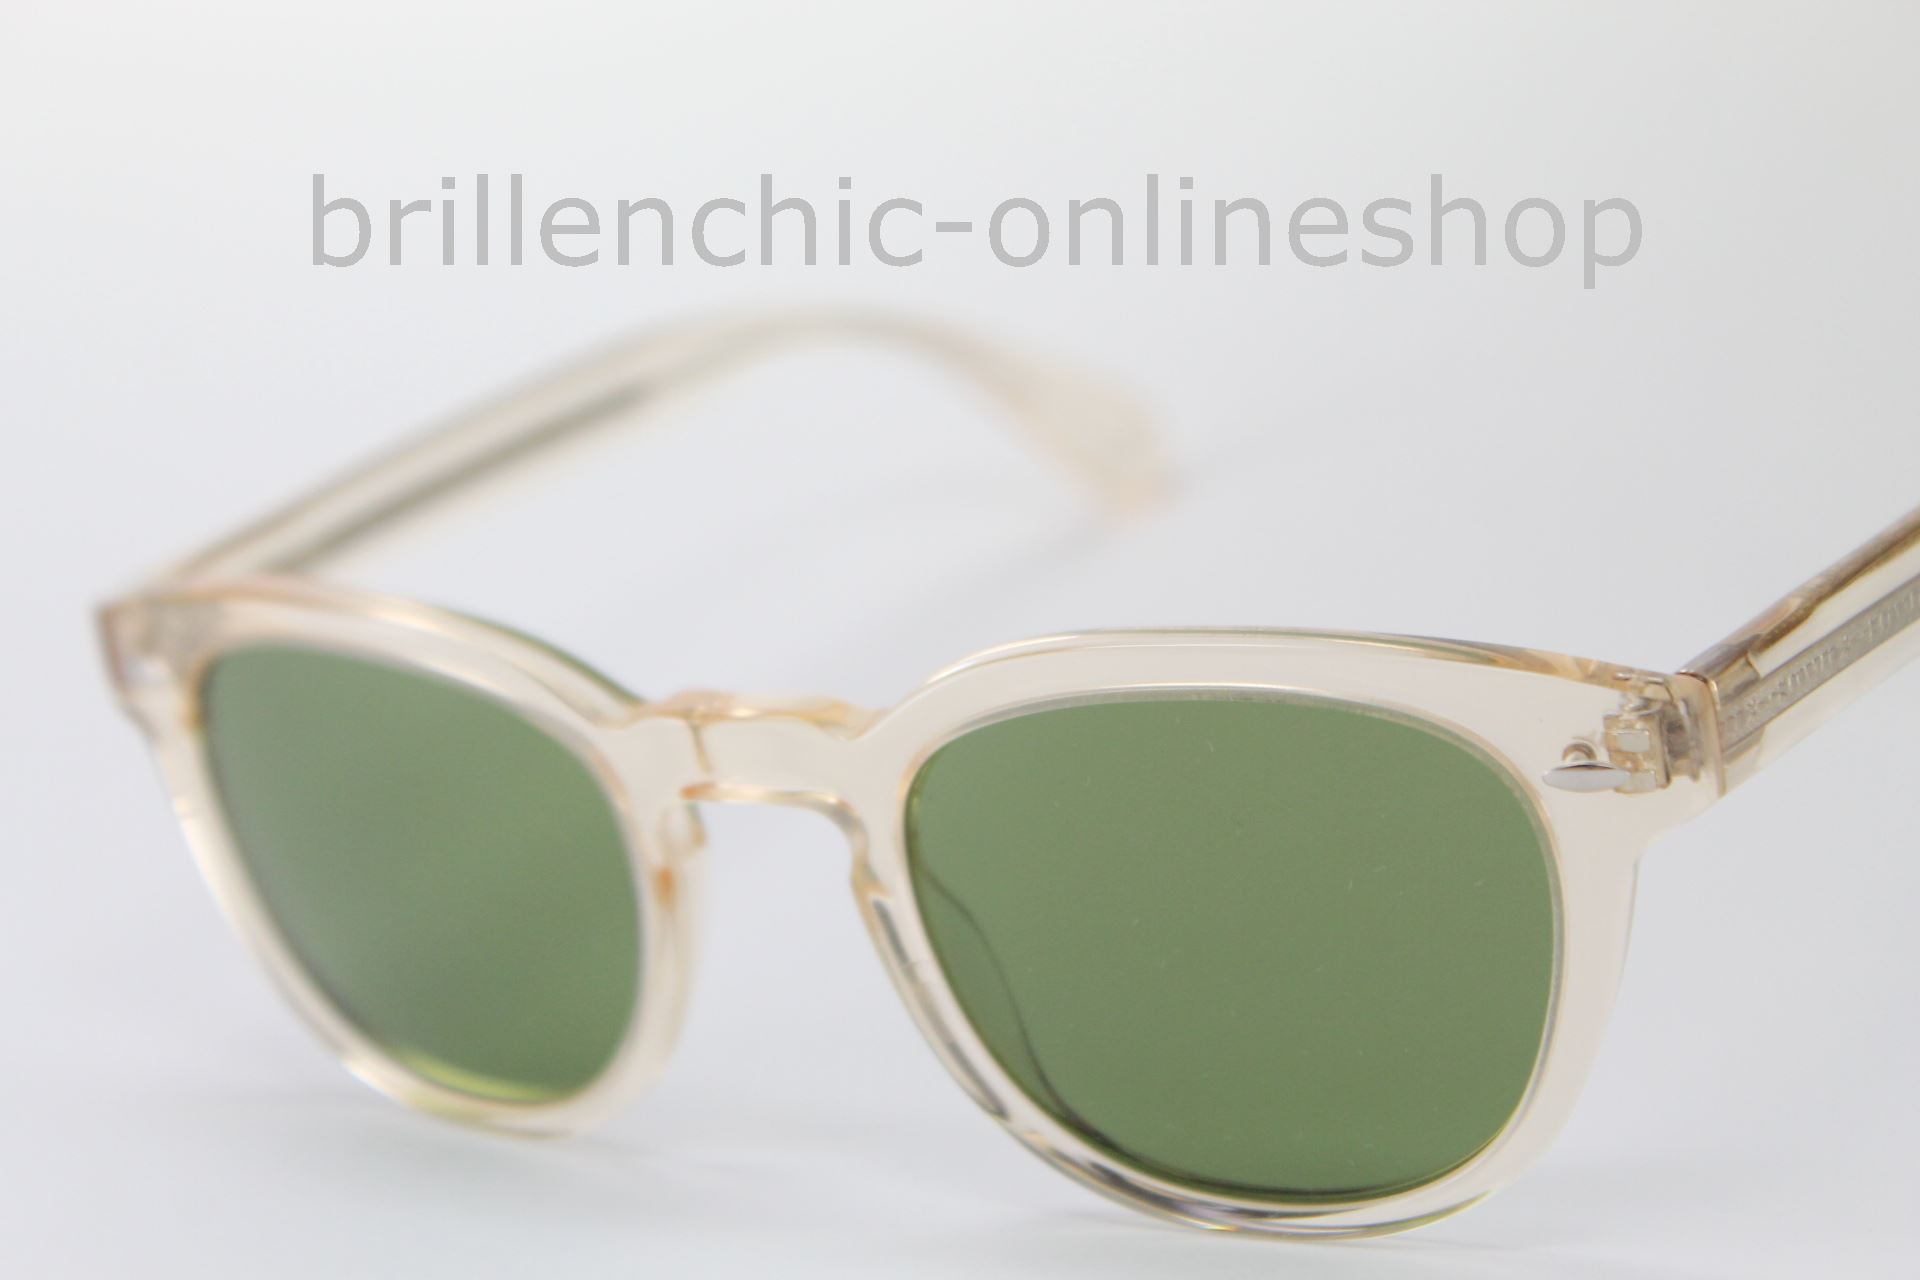 8f5b1d9bcb Brillenchic-onlineshop in Berlin - OLIVER PEOPLES SHELDRAKE SUN OV ...